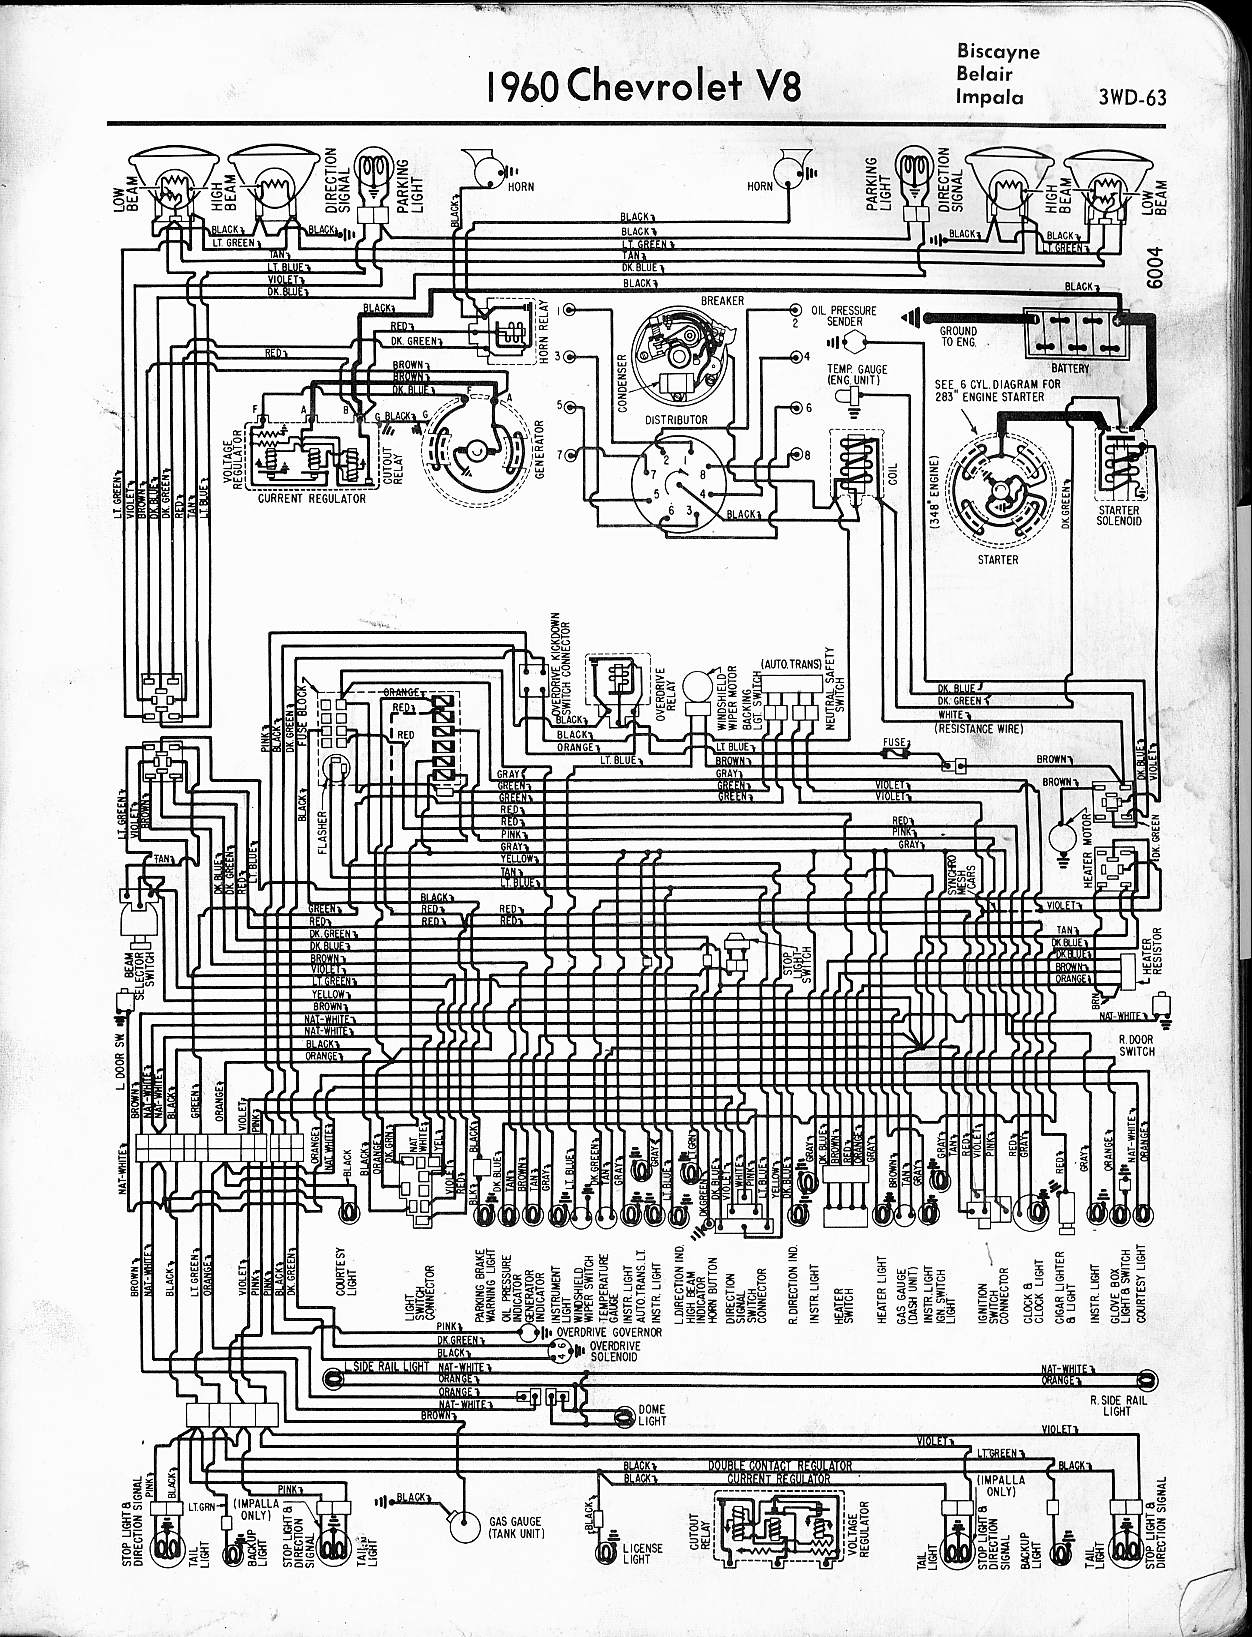 1960 corvette wiring harness data wiring diagram1960 corvette wiring harness wiring library corvette tail lights 1960 corvette wiring harness